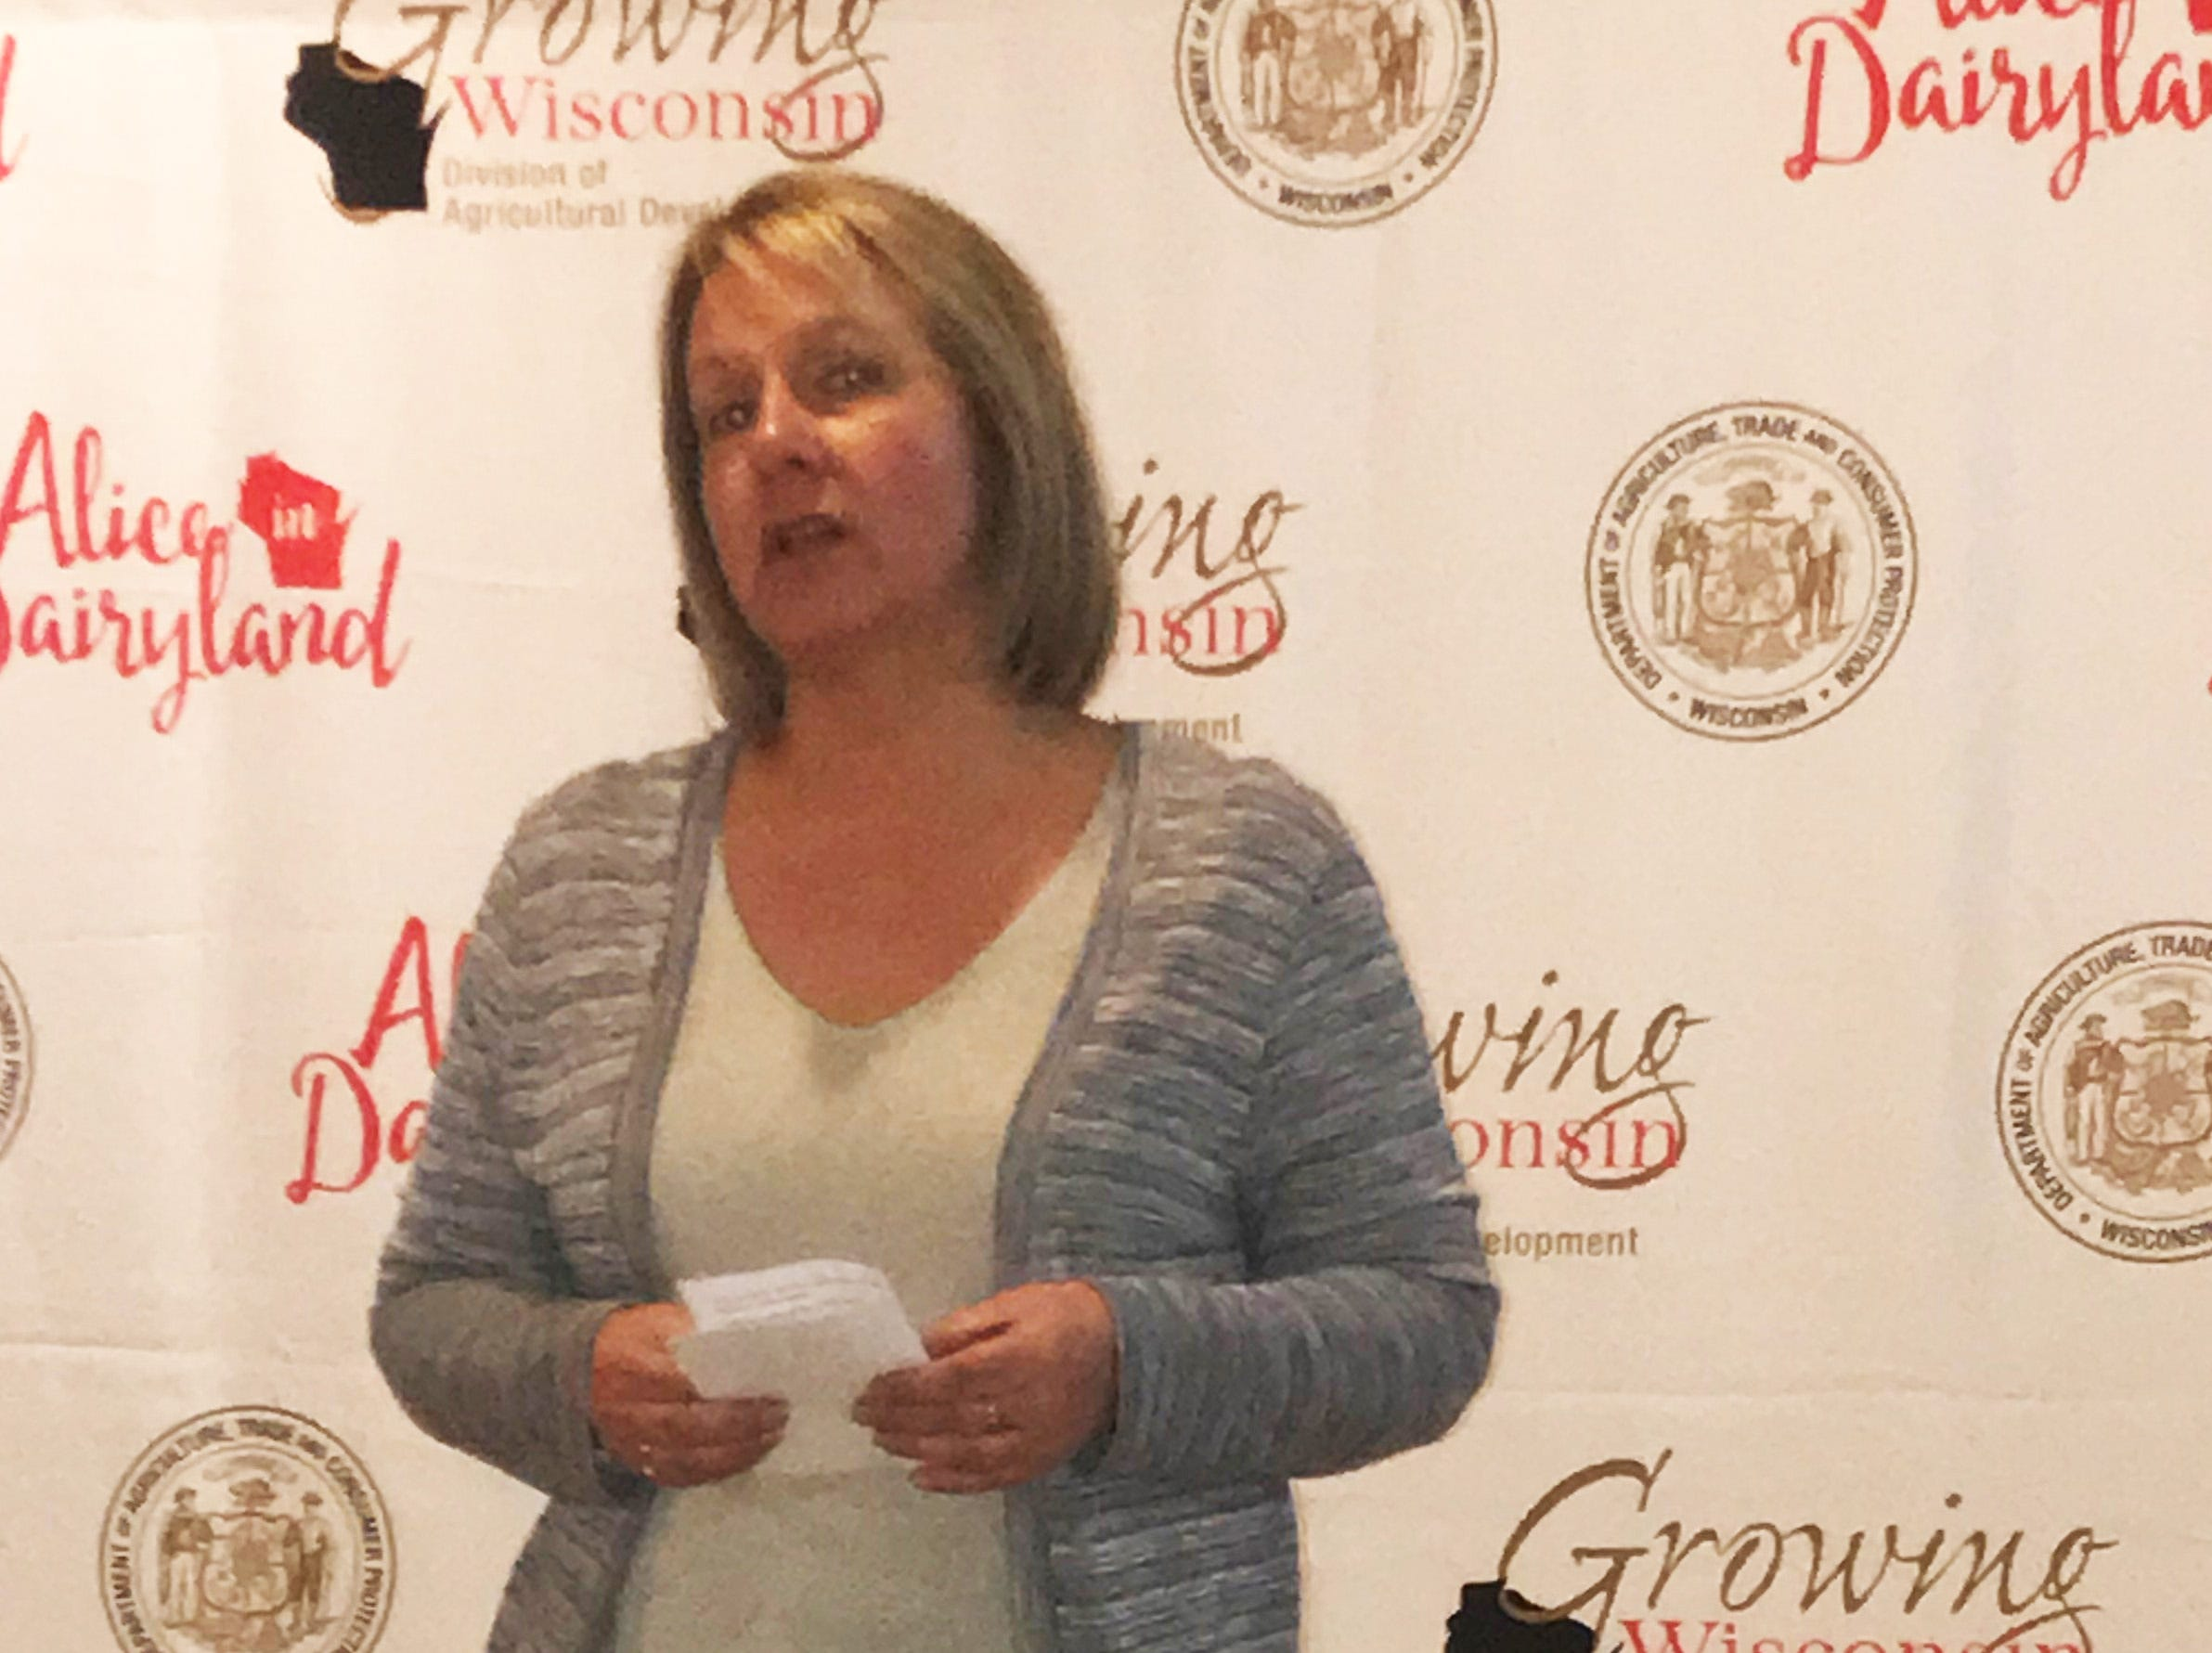 Noreen Rueckert, a member of the Green County Tourism Office welcomes guests to the March 15 press conference at the New Glarus Hotel.